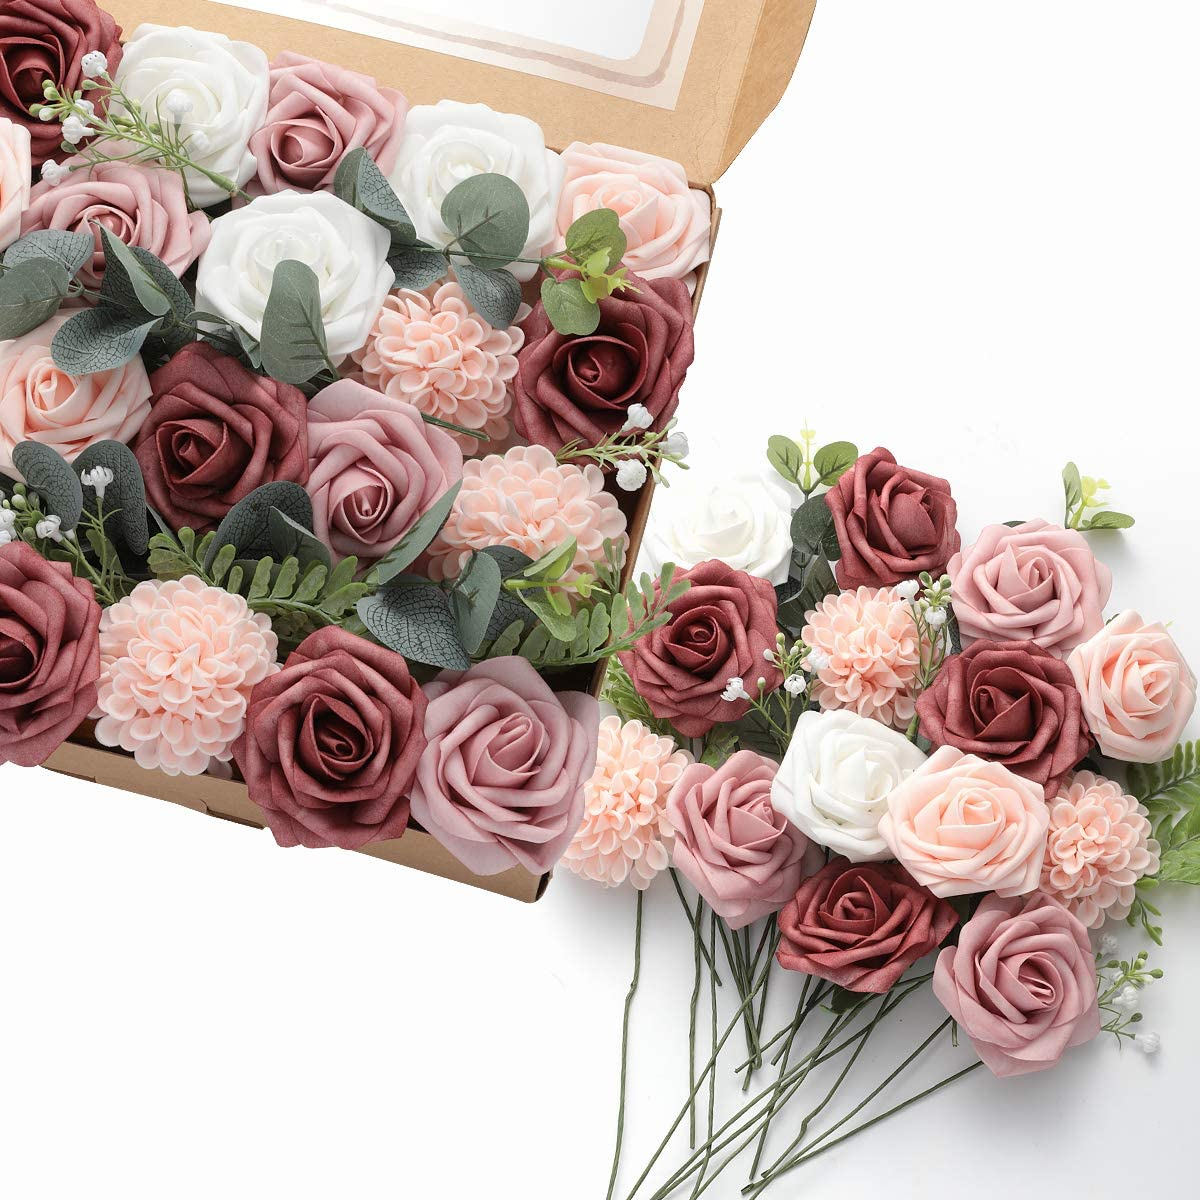 DerBlue Artificial Flowers Combo Realistic Rose Fake Stem Max 58% OFF f with excellence